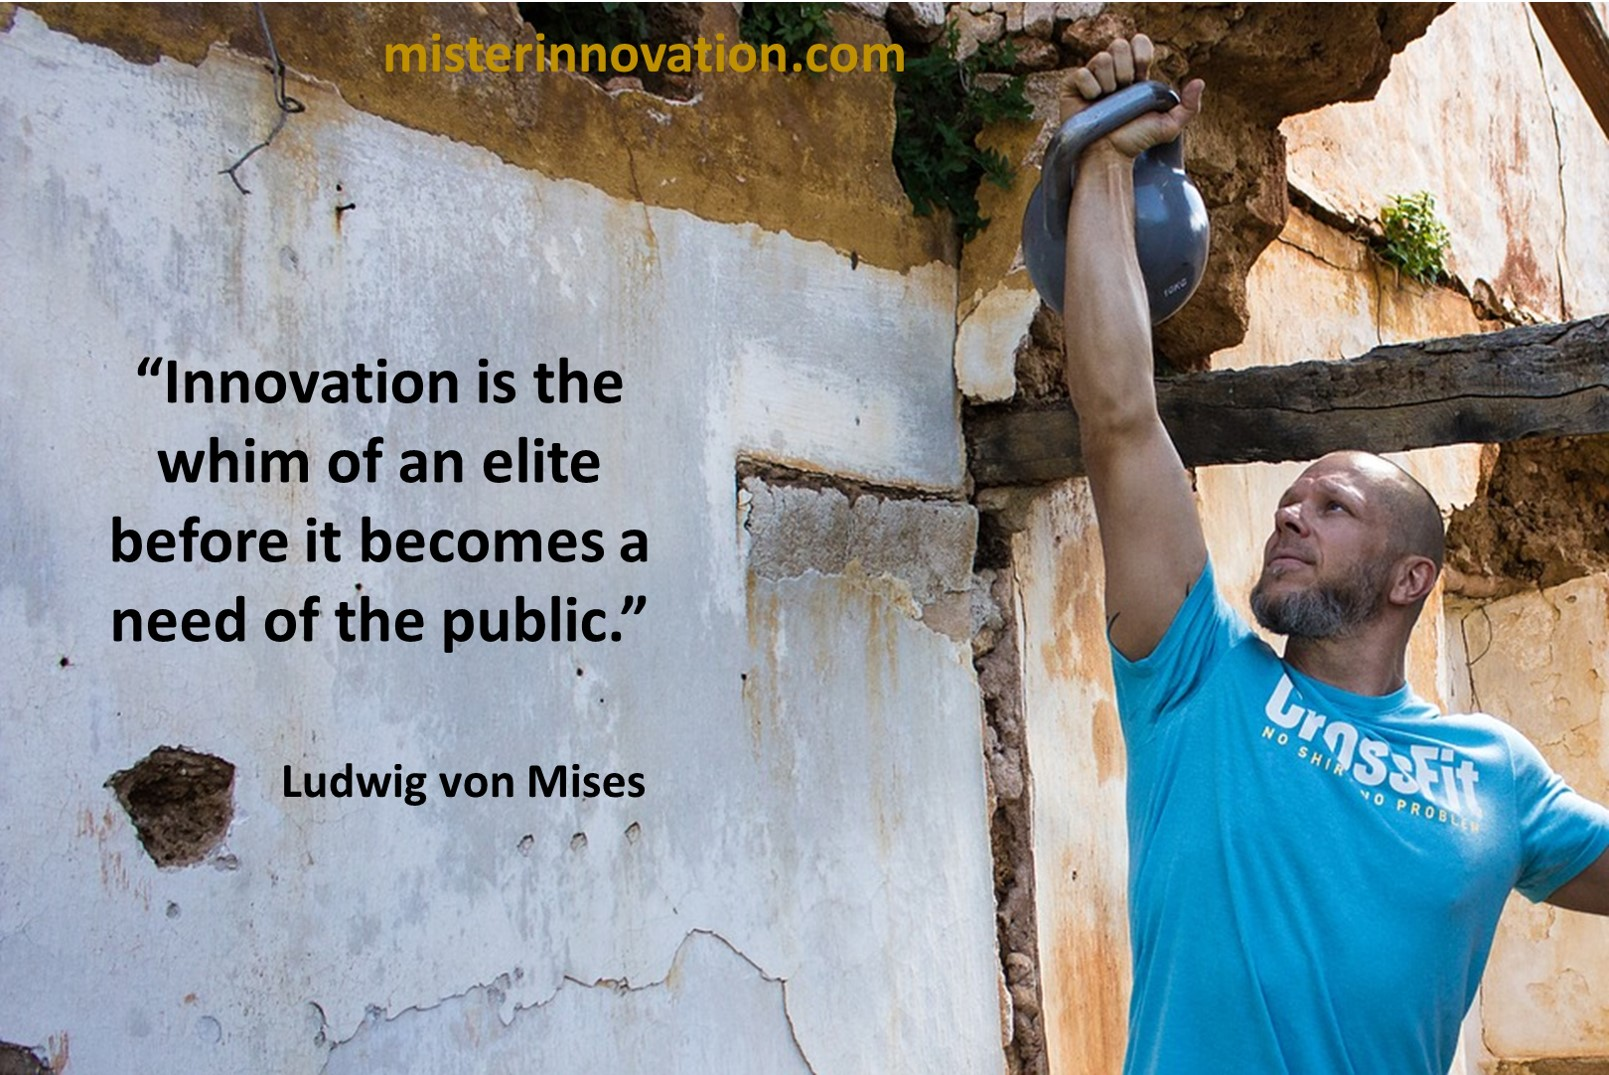 Ludwig von Mises Quote on Innovation is a Whim